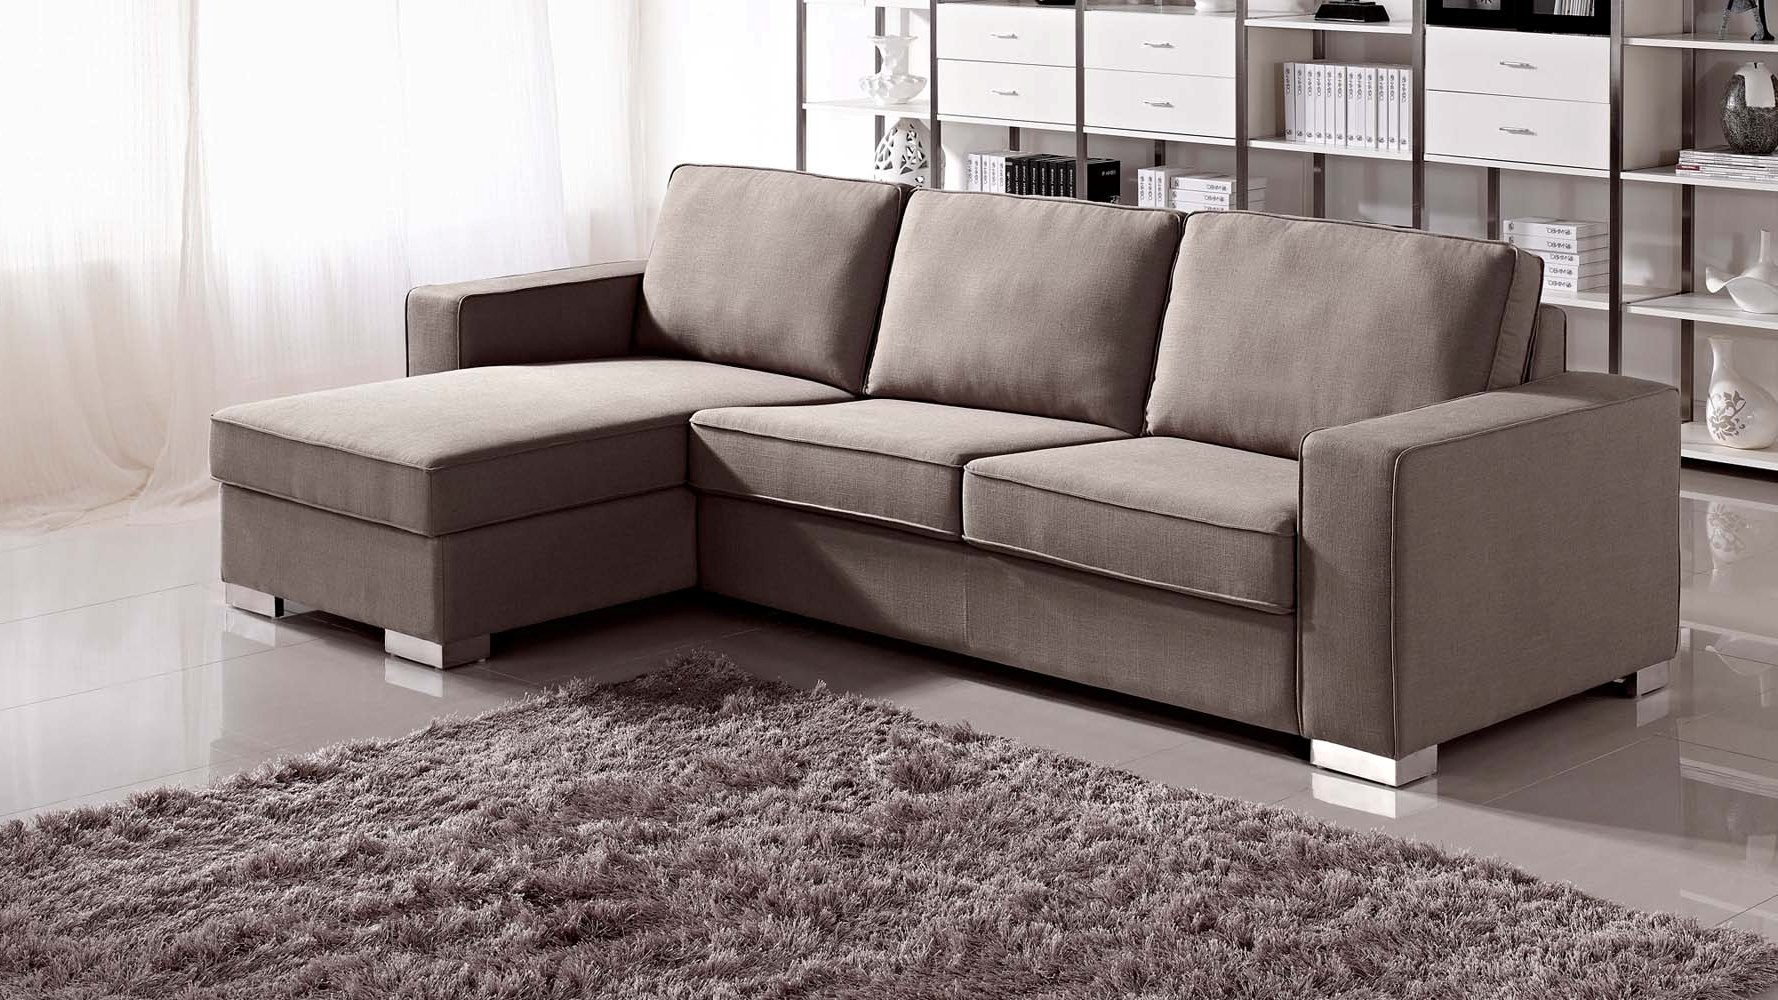 Inspiration About Sears Sectional Sofa All Information Sofa Desain Ideas  Regarding Craftsman Sectional Sofa (#